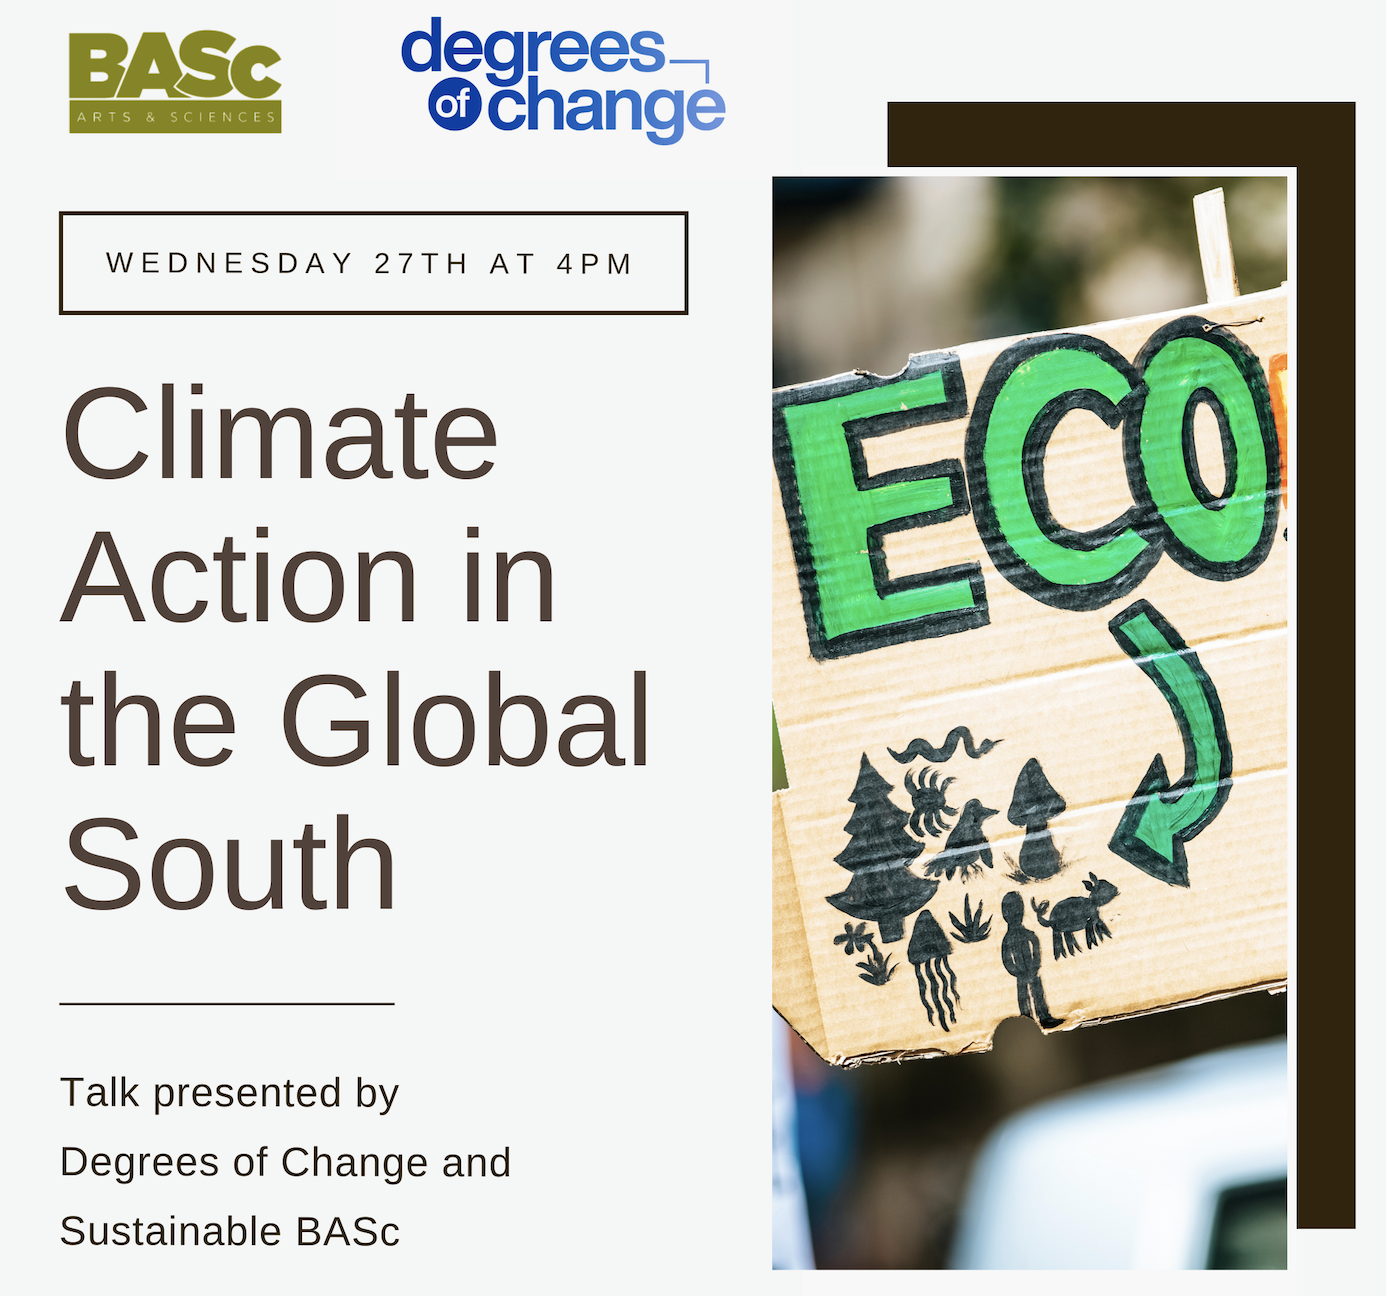 SustainableBASc and Degrees of Change talk